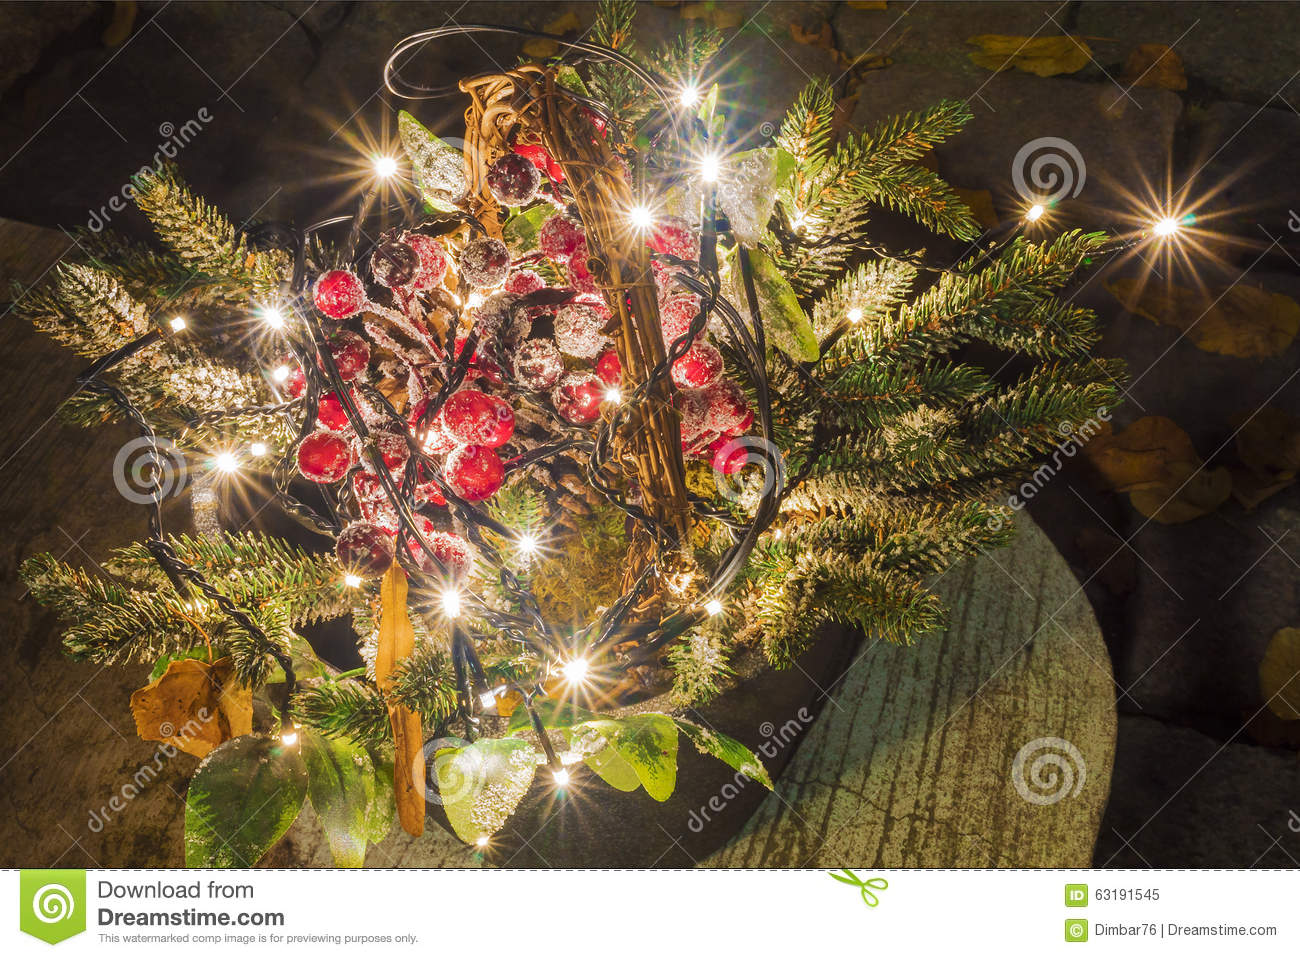 Design Dimbar Christmas Composition With Light Bulbs Street Design Of The